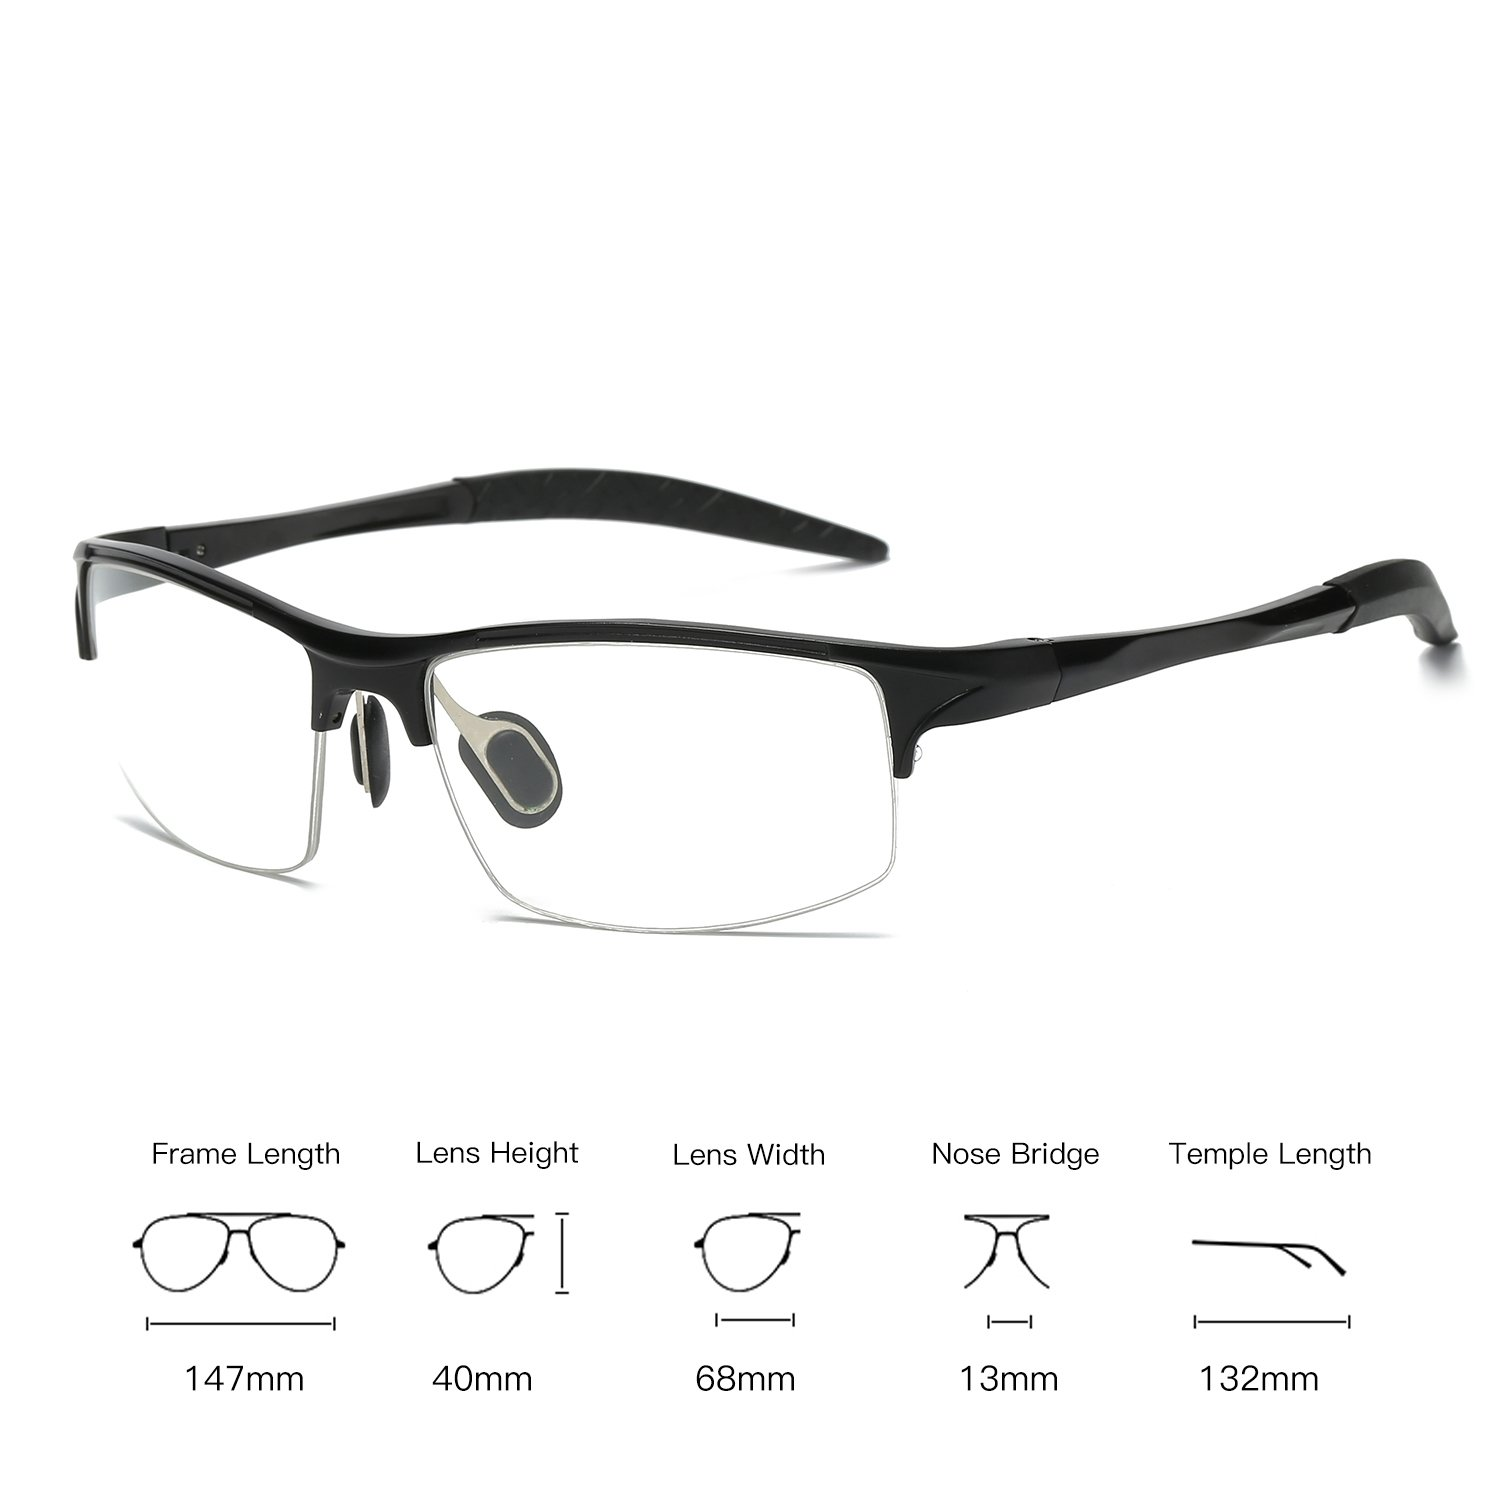 30af3266bb Amazon.com  Galulas Professional Blue Light Blocking Glasses for Men Women  Non Prescription Clear Lens Anti Glare UV Protection Eye Strain Reducing  Computer ...